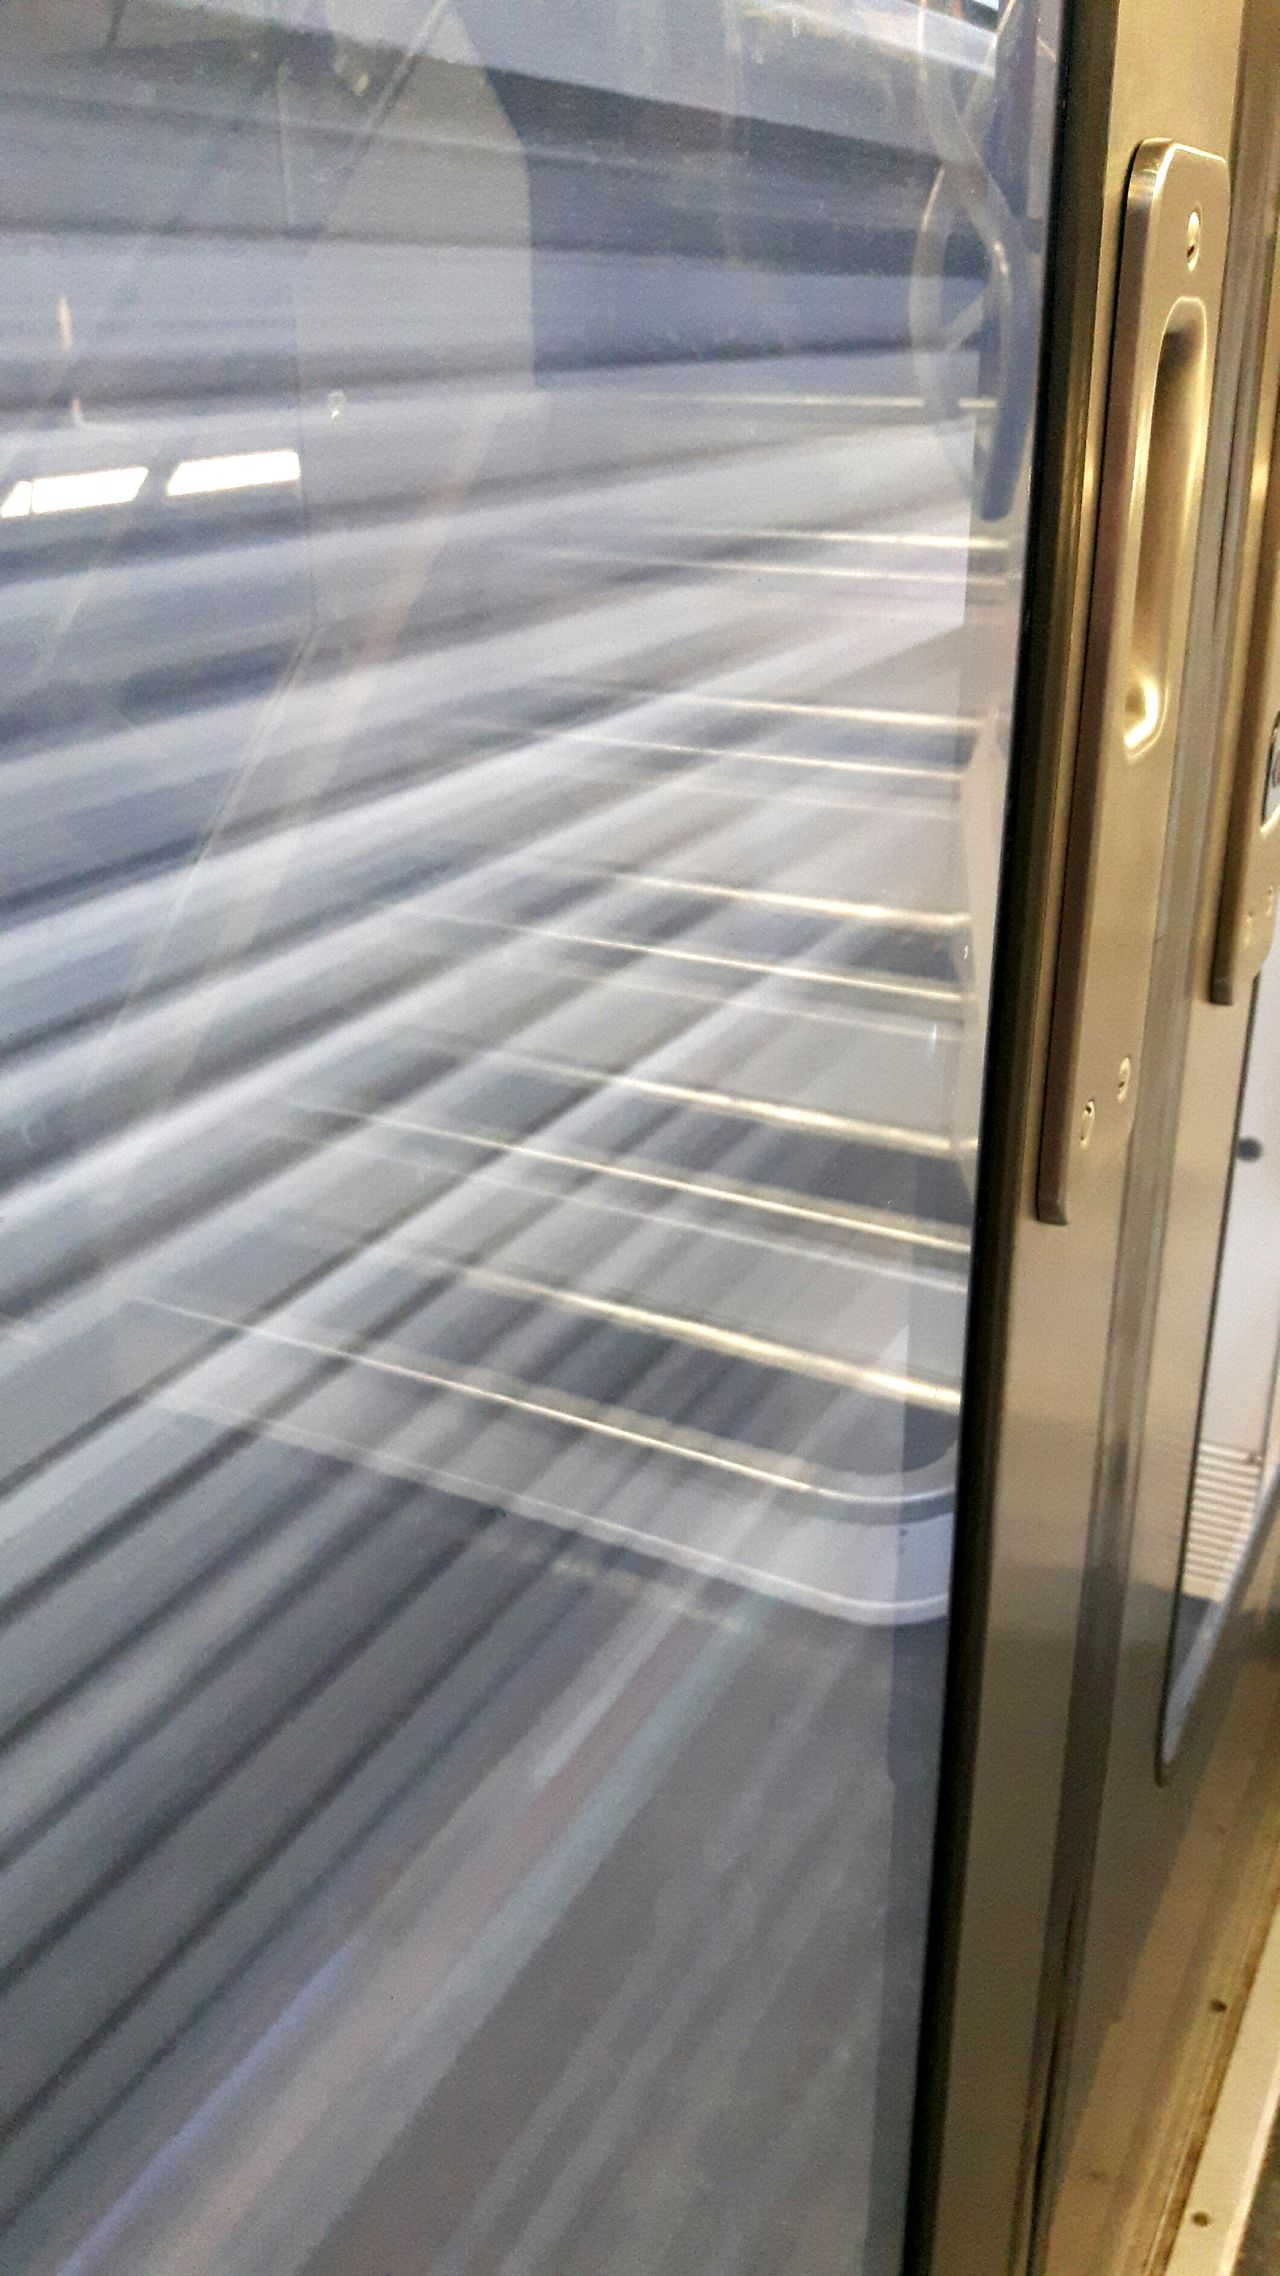 In The Train Moving Movement Photography Reflections Light Reflections Glasses Reflections Stairs Lines Lines And Angles Eye4photography  Eyemphotography EyeEm Gallery